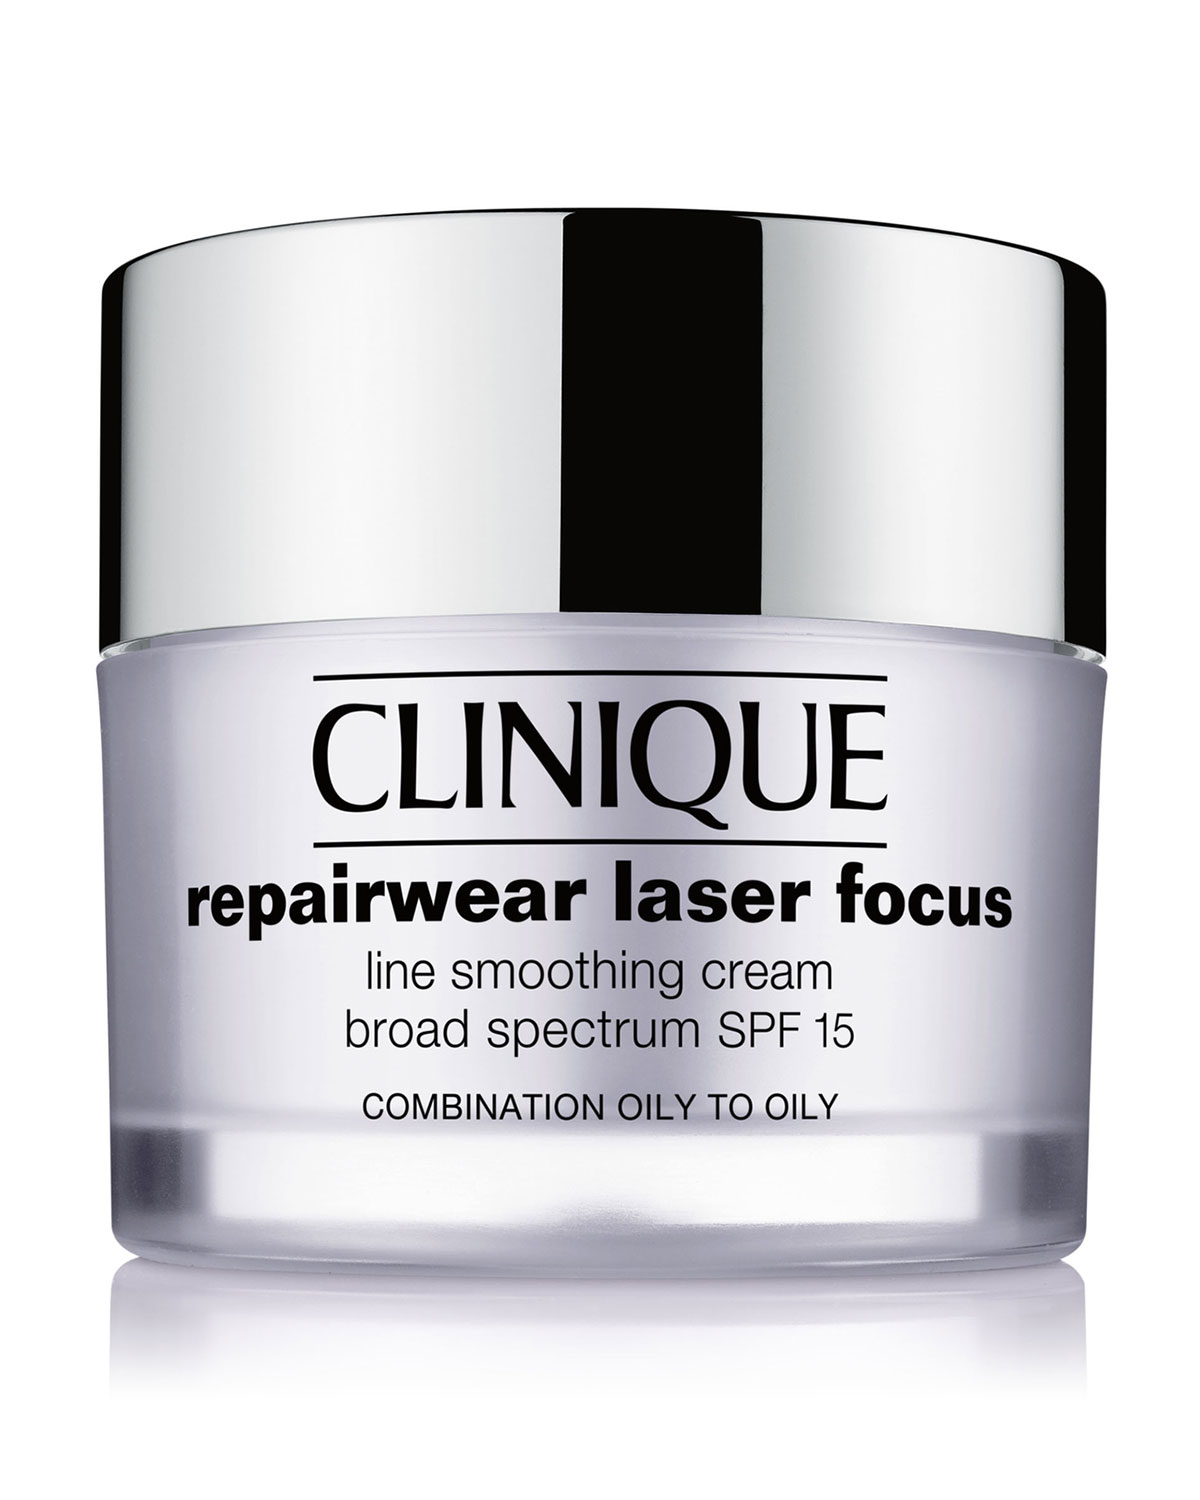 REPAIRWEAR LASER FOCUS LINE SMOOTHING CREAM BROAD SPECTRUM SPF 15 FOR COMBINATION OILY TO OILY SKIN